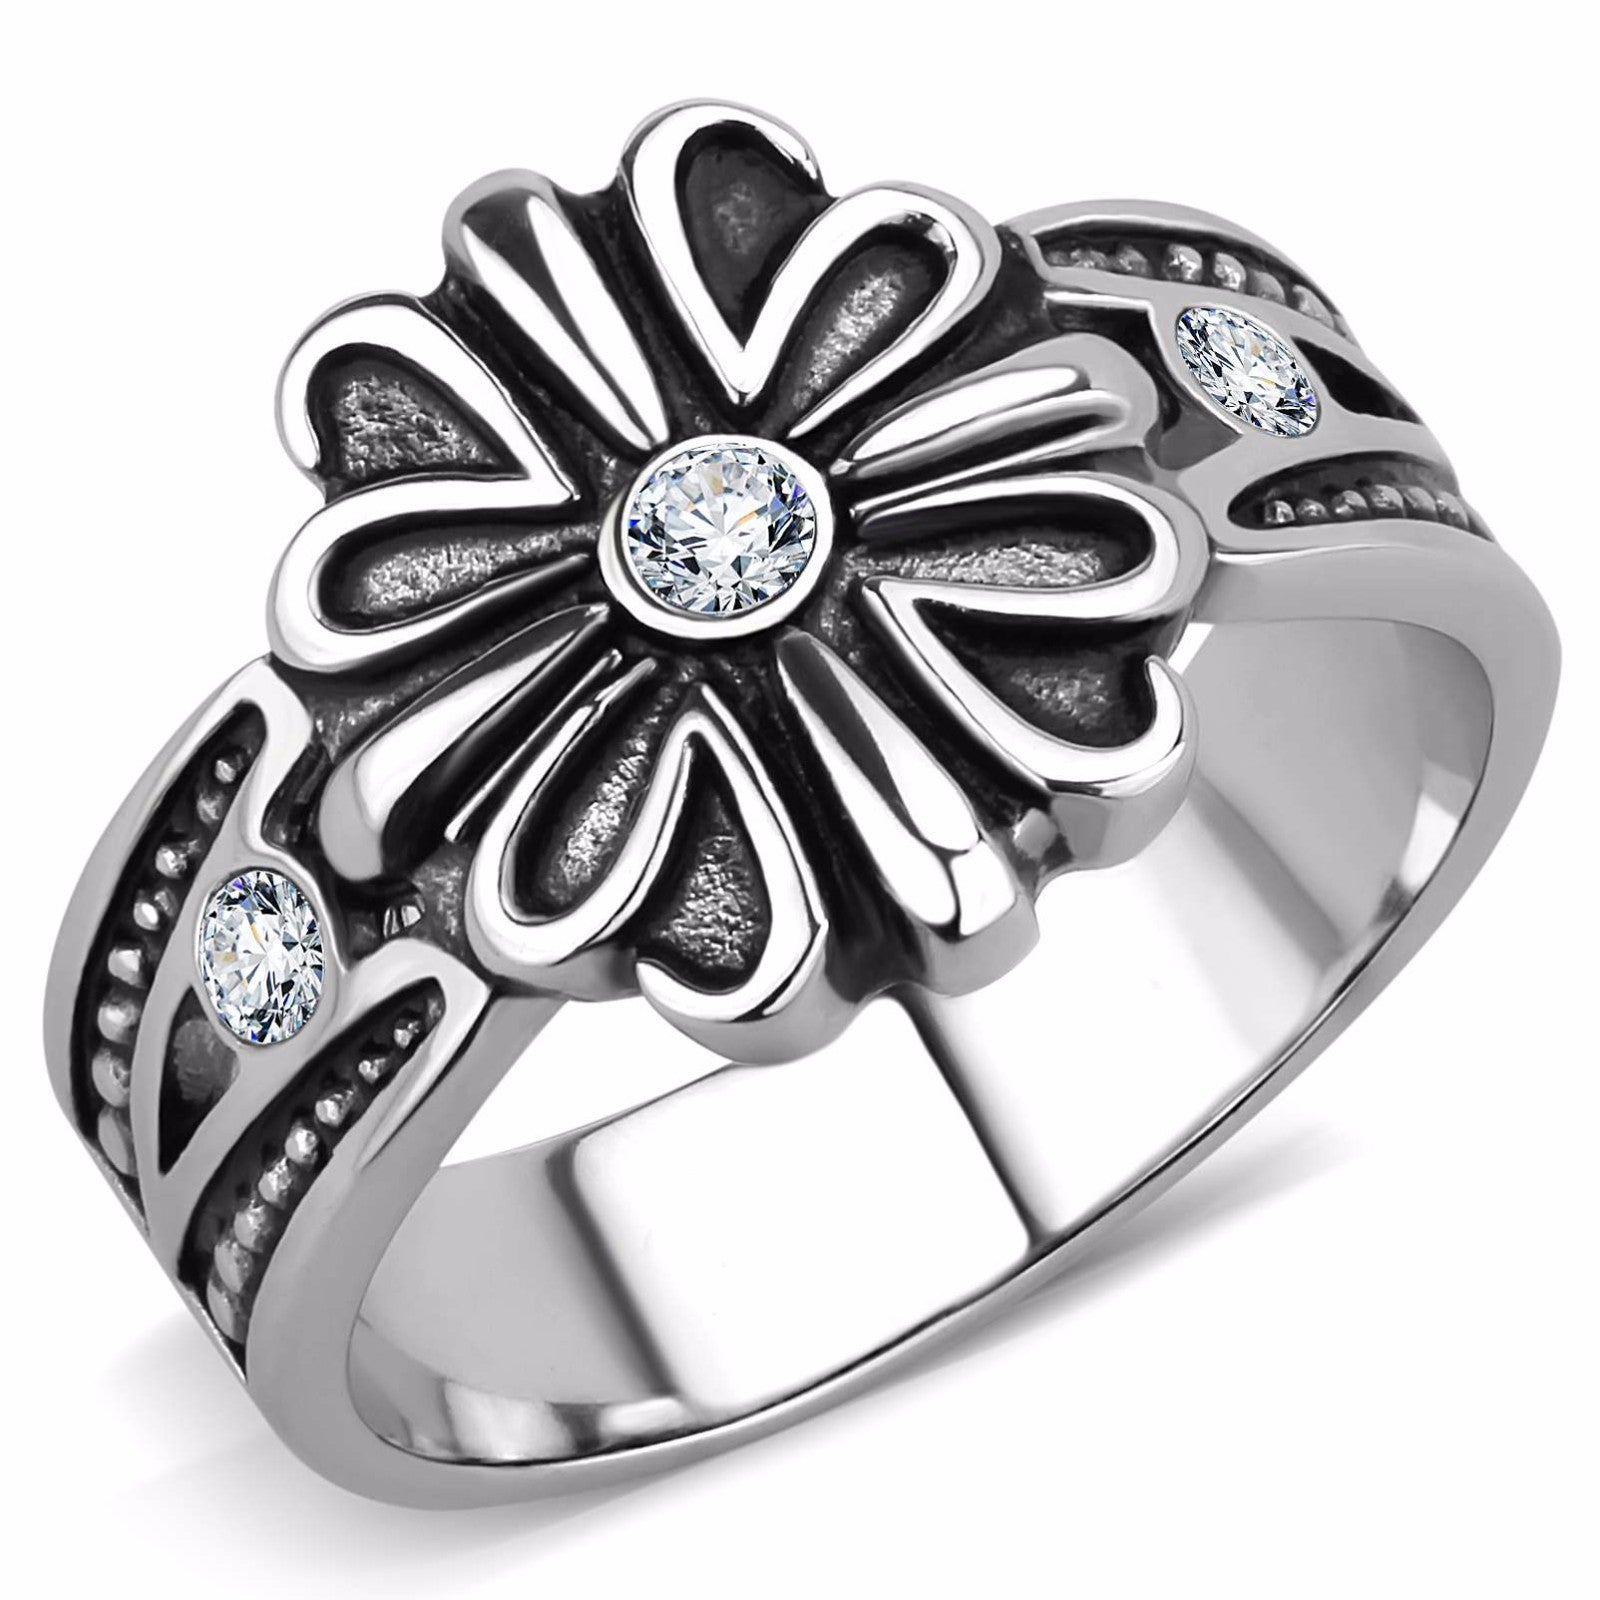 Top Grade Crystal Center High Polish Stainless Steel Mens Stylish Ring - LA NY Jewelry